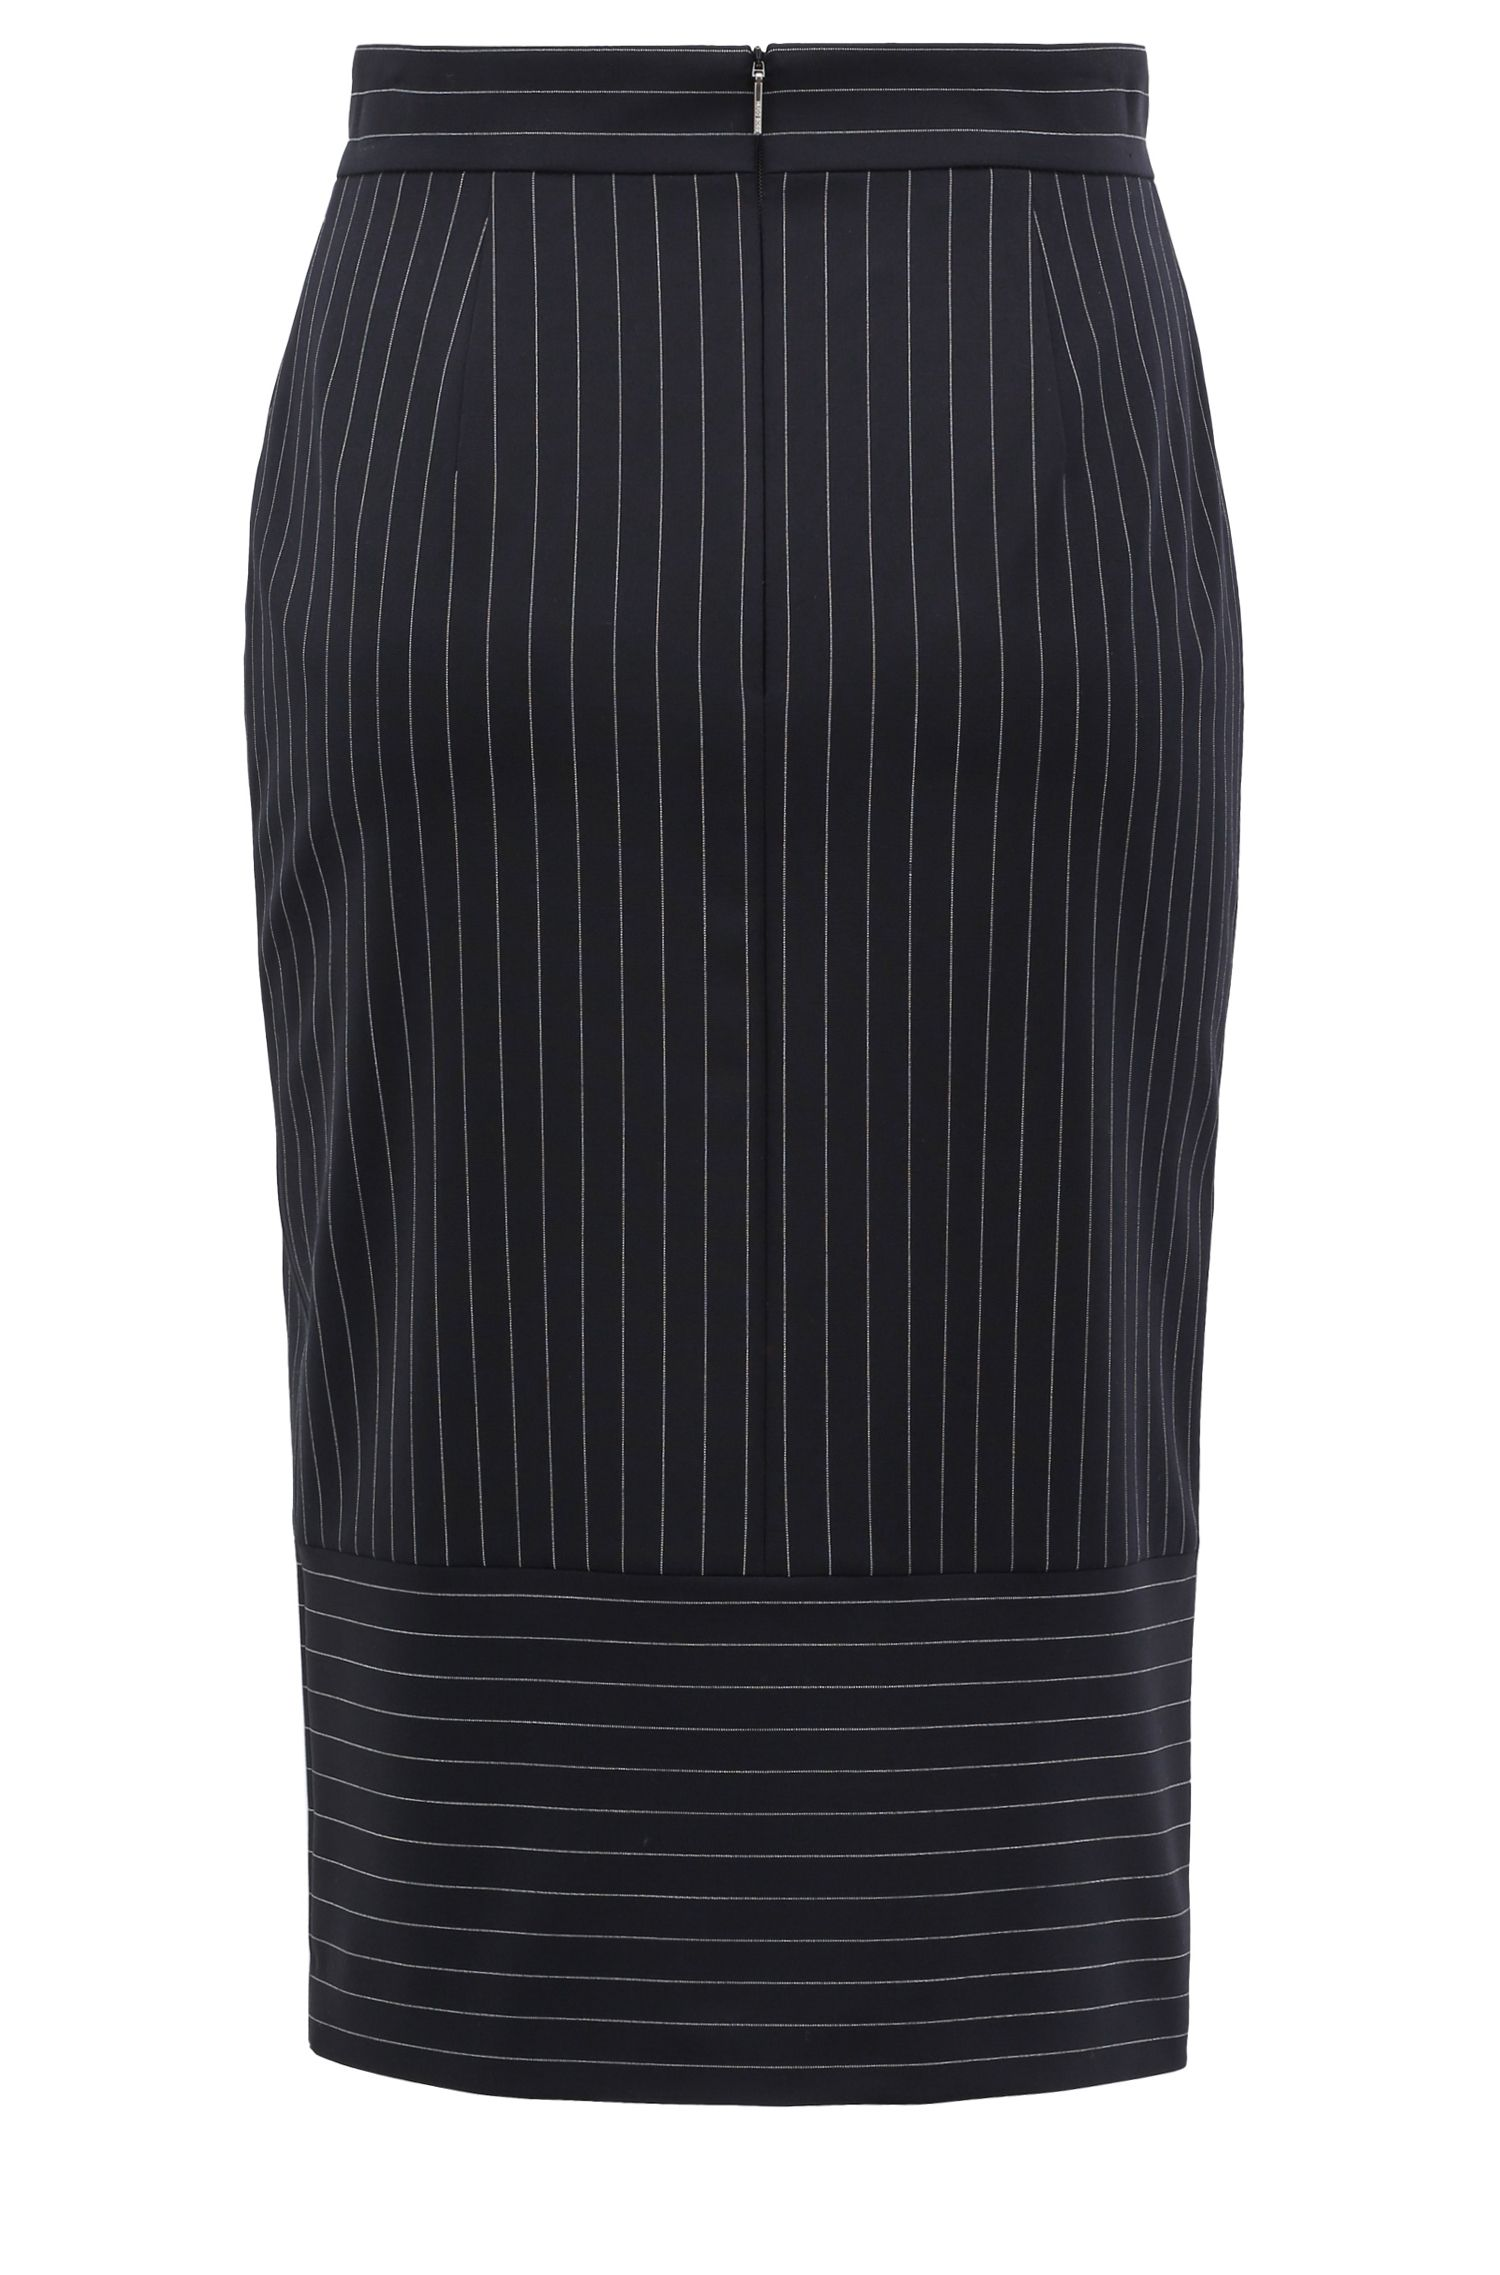 Pinstripe pencil skirt with turned details, Patterned